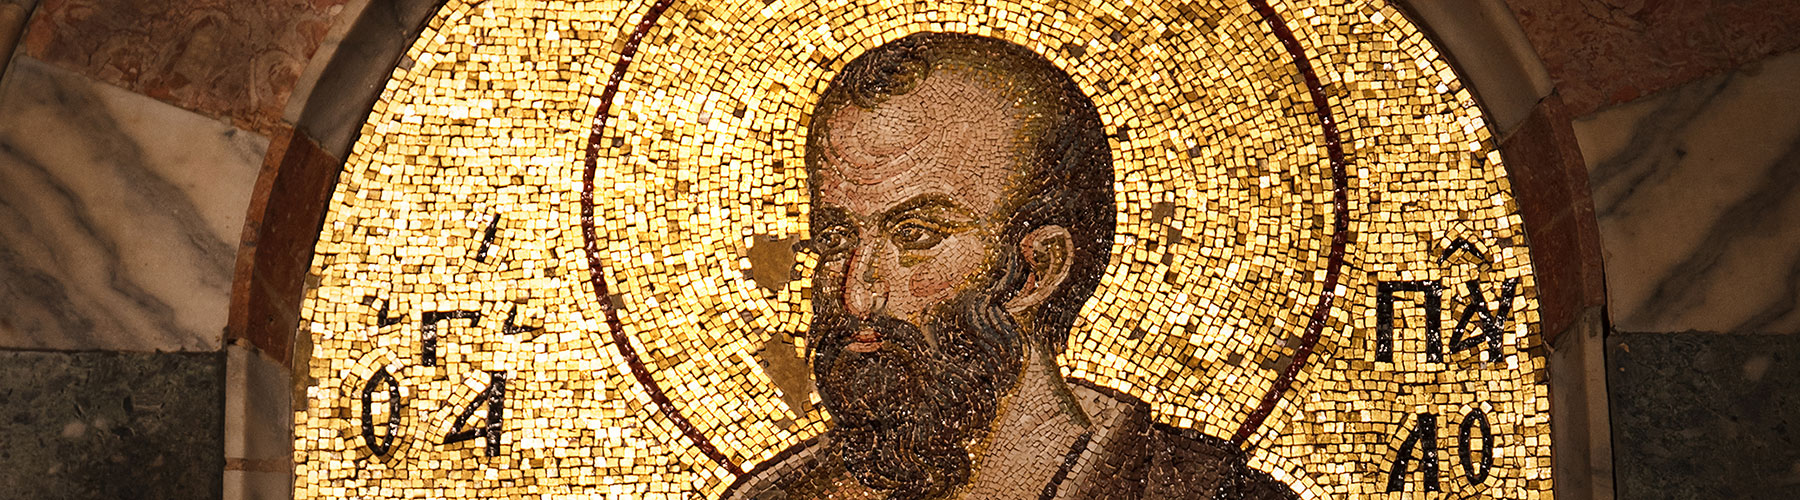 Apostle Paul & The Greek Society | Paul In Ancient Greece